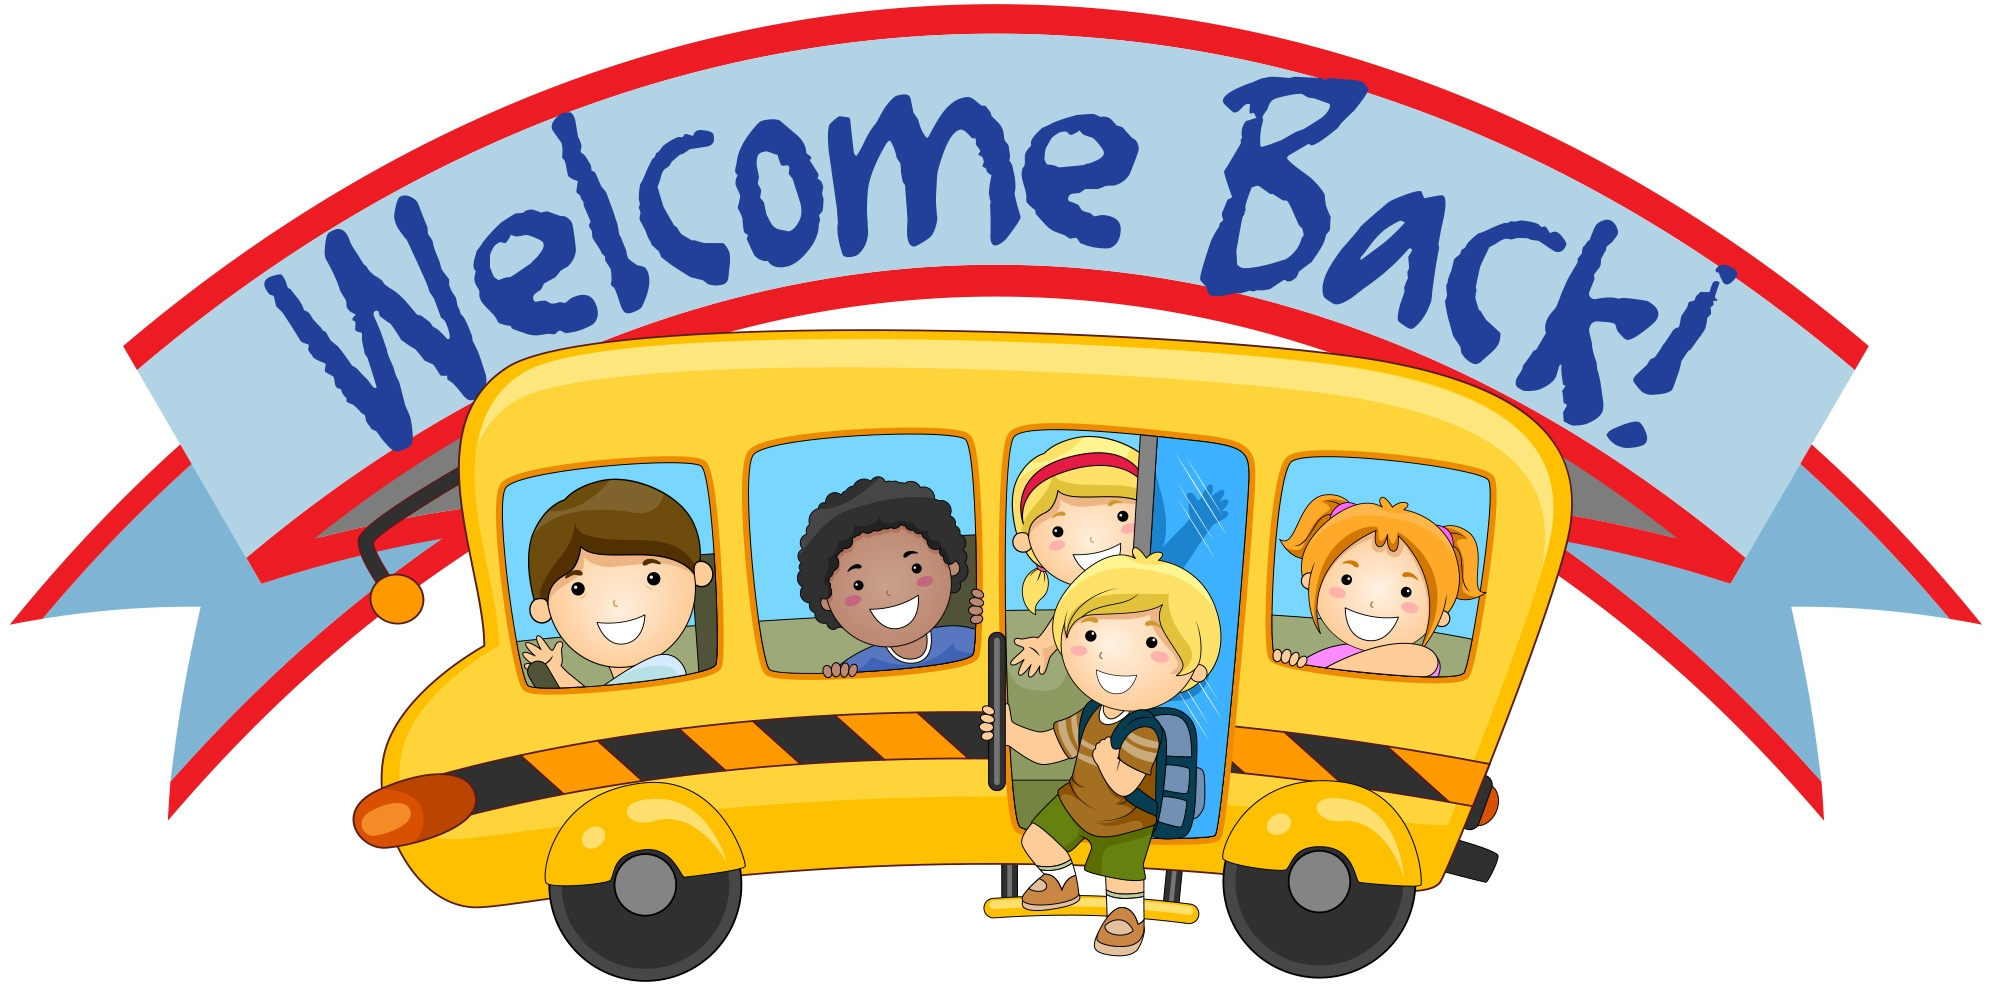 School welcome back clipart clipart royalty free library Free Welcome Back To School Signs, Download Free Clip Art ... clipart royalty free library